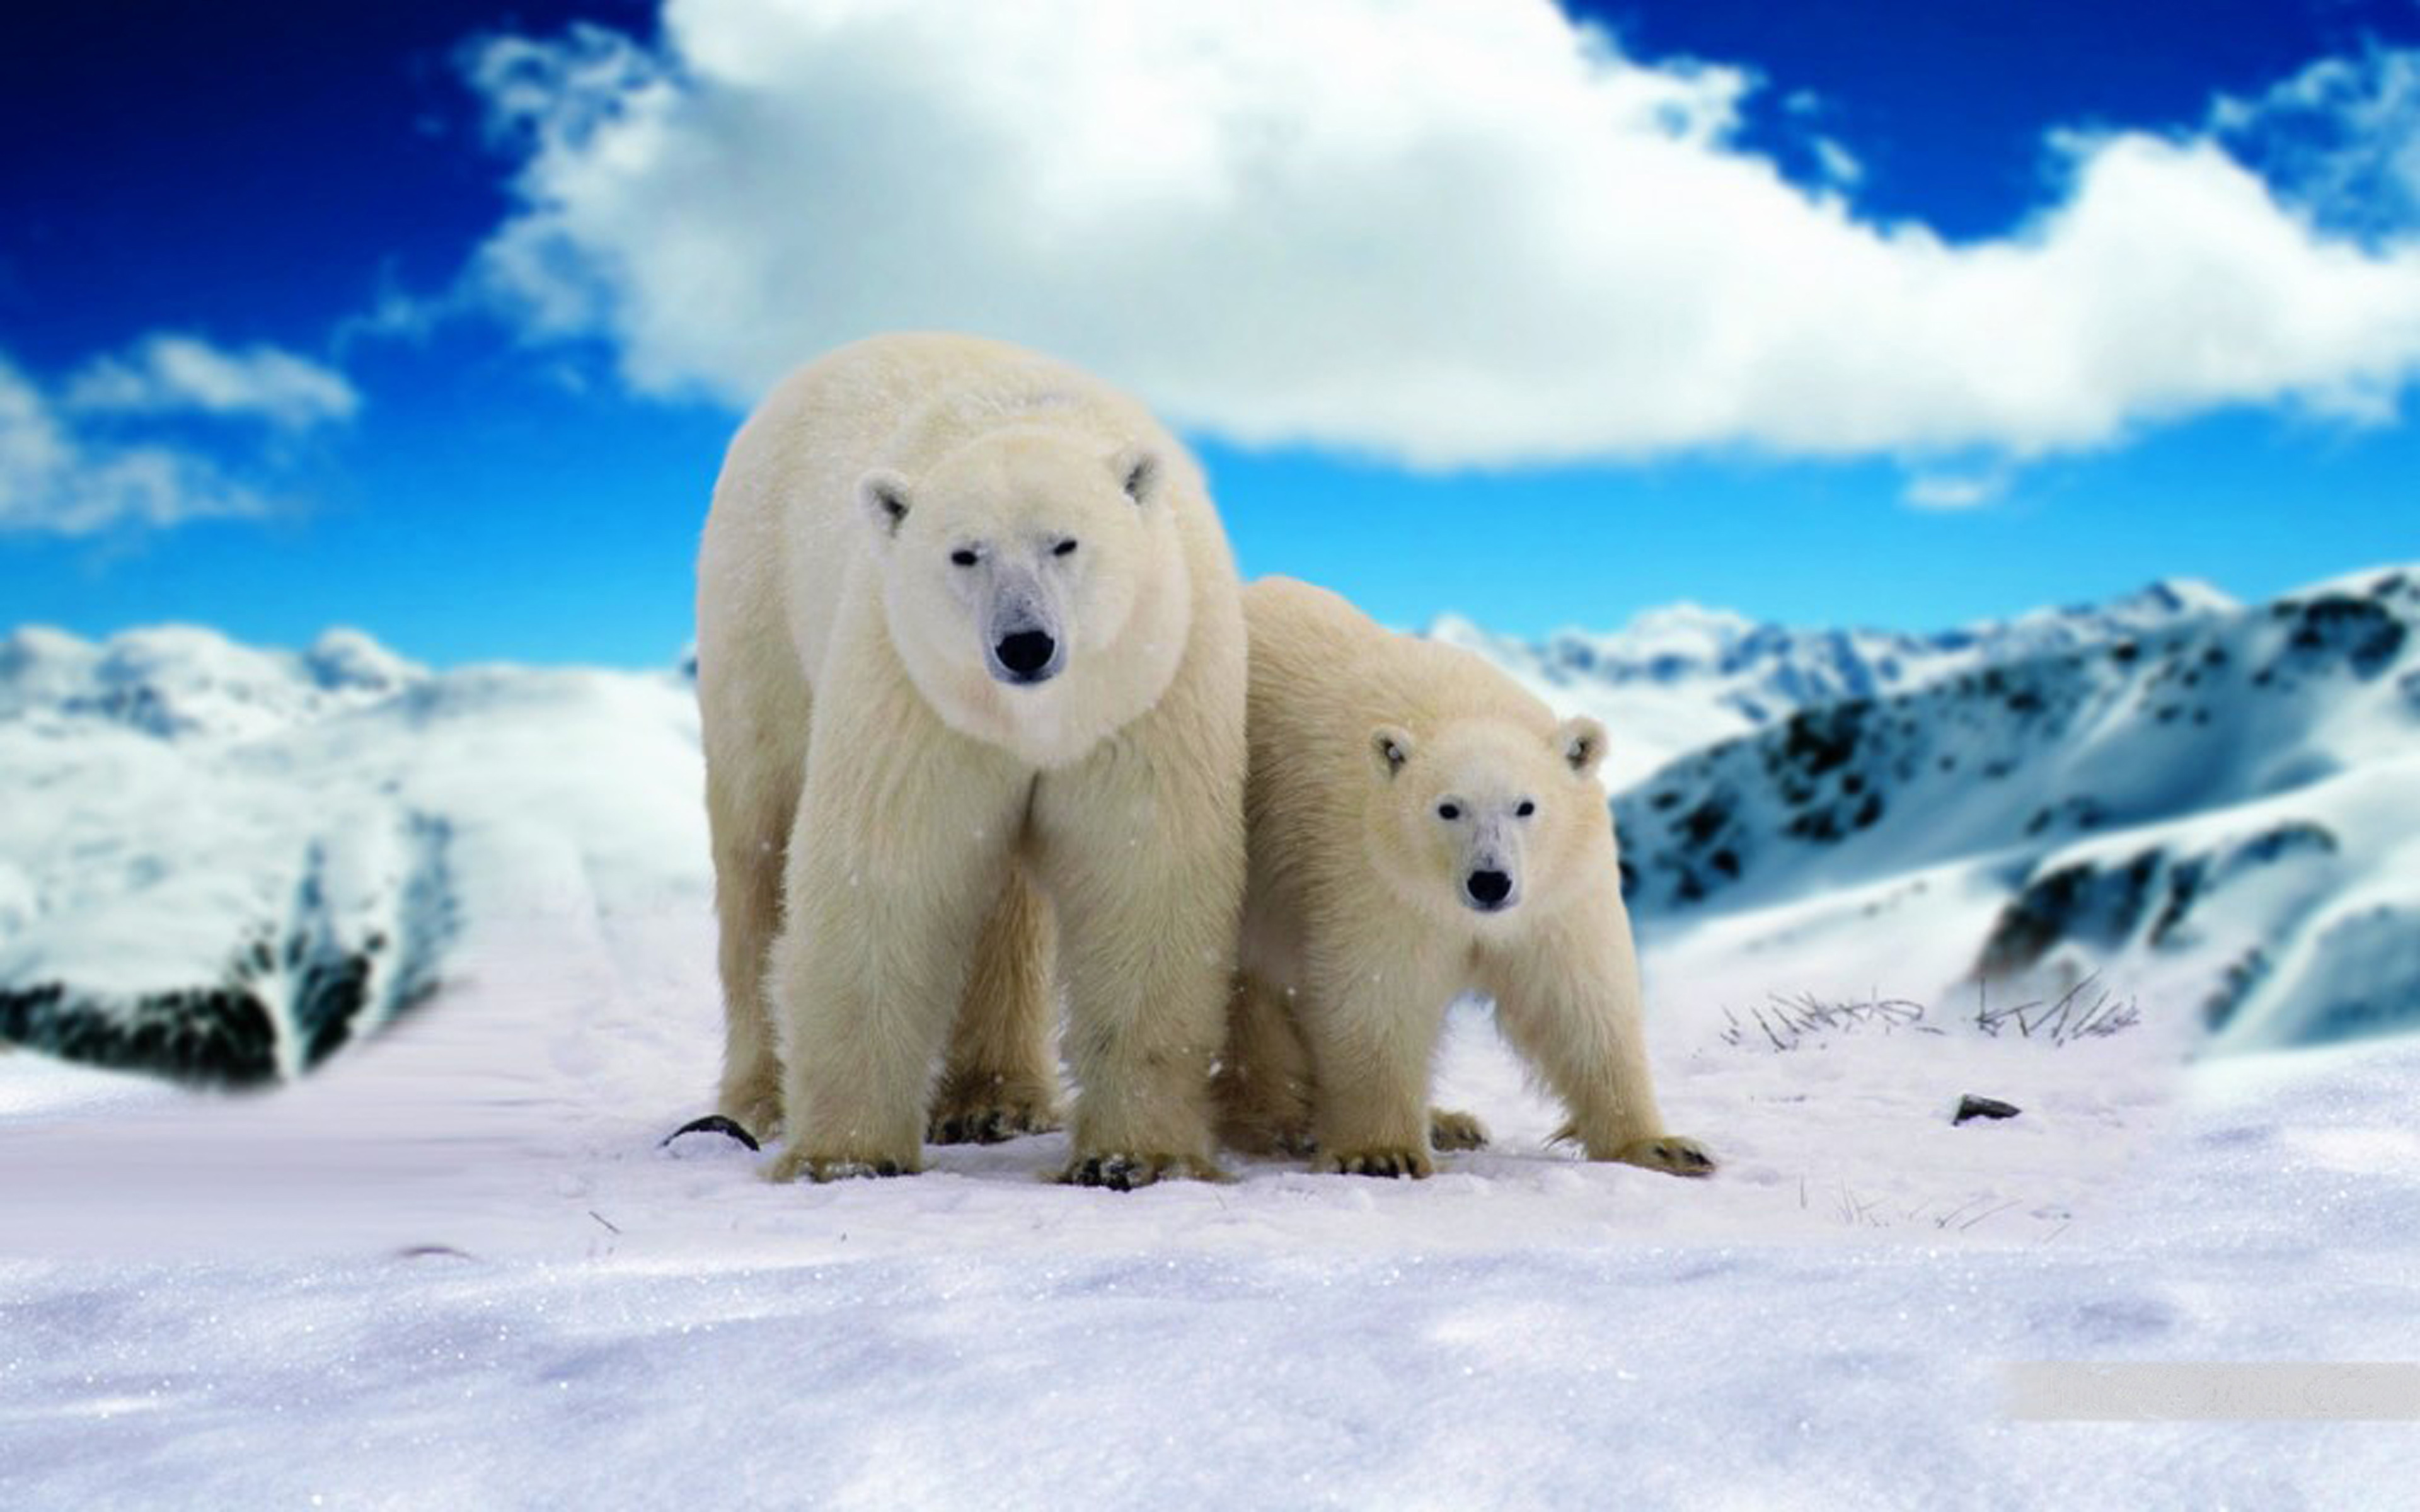 Cute Birds Wallpapers For Mobile Phones Adult Polar Bear And Young Bear Hd Wallpapers For Mobile